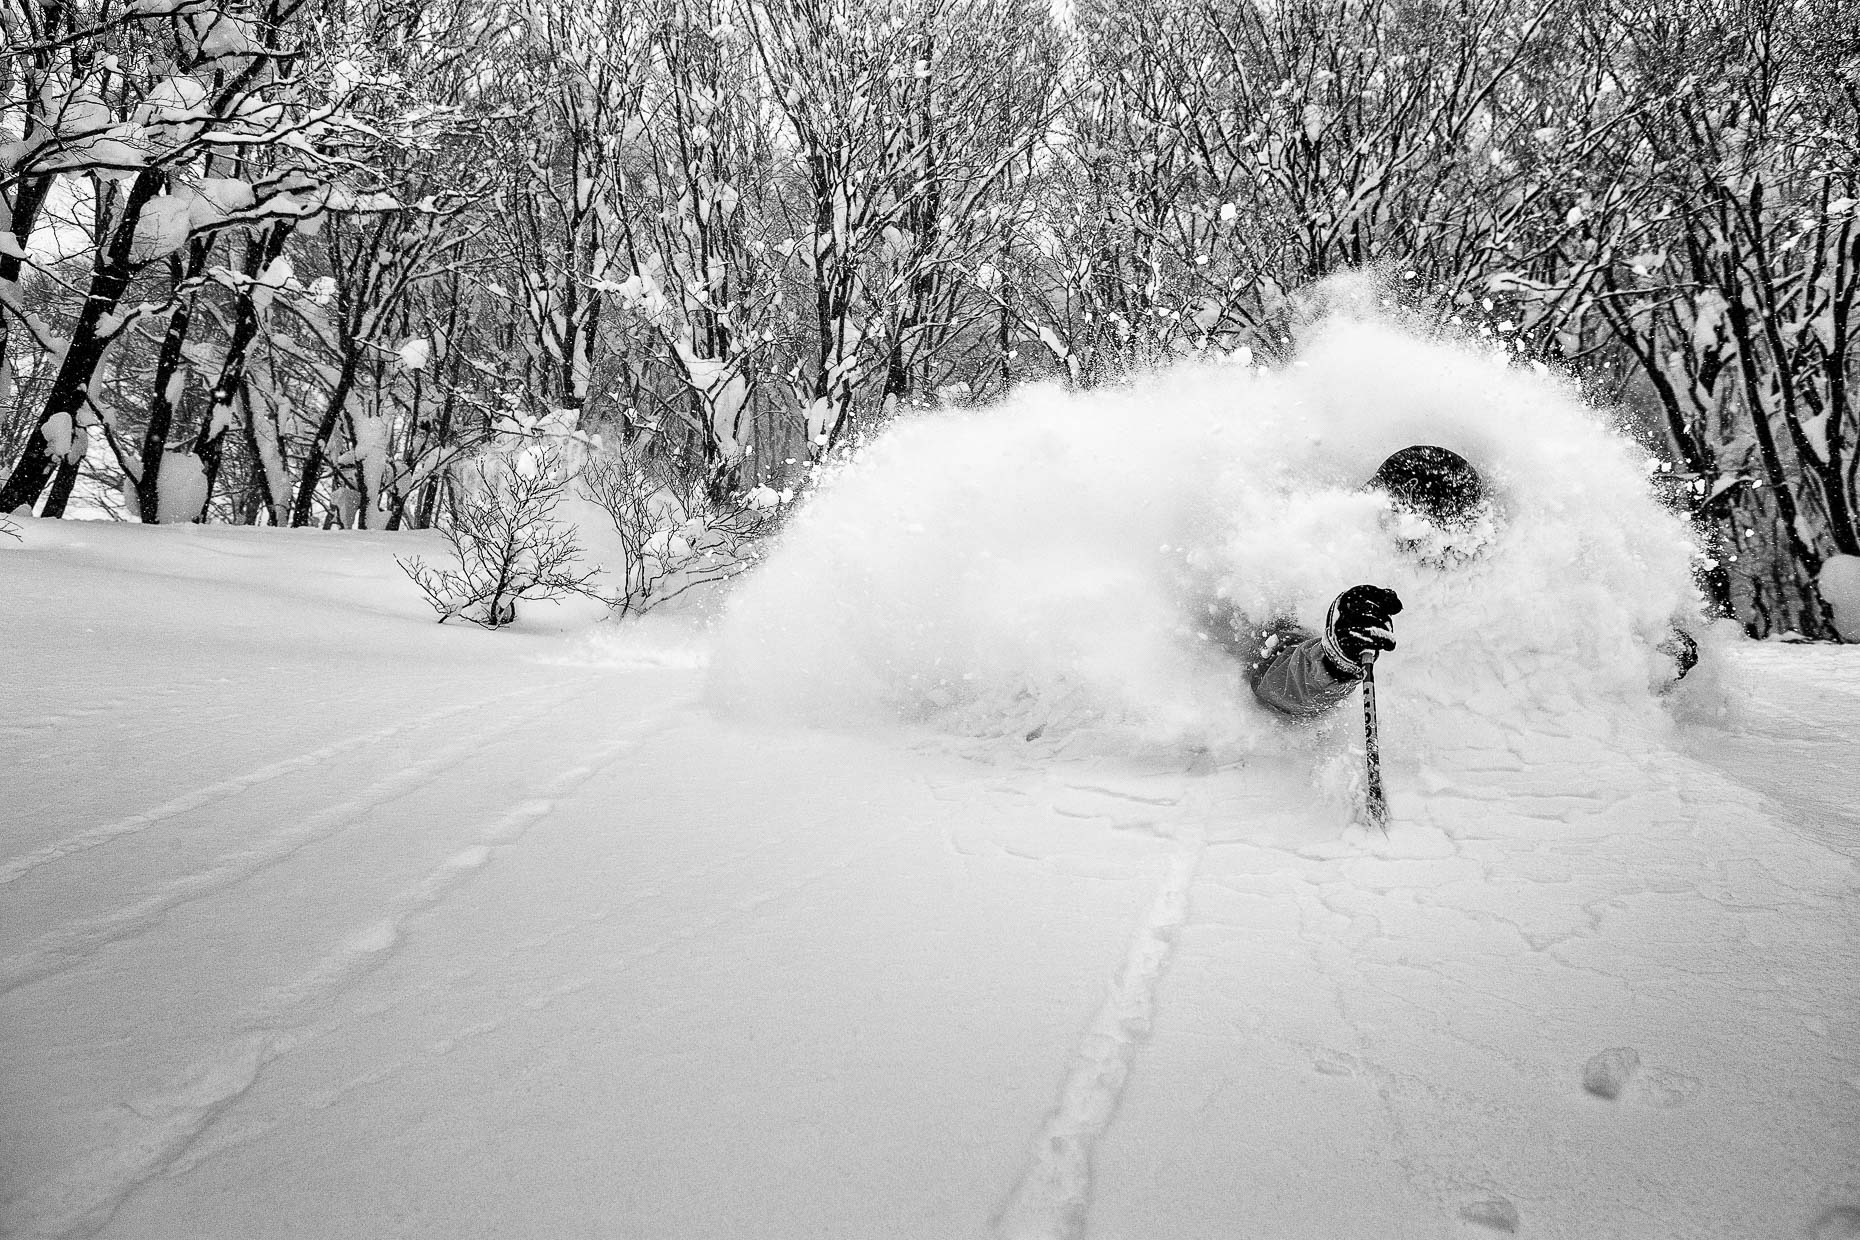 Adam U, Powder, Japan 059_20130117549-Edit